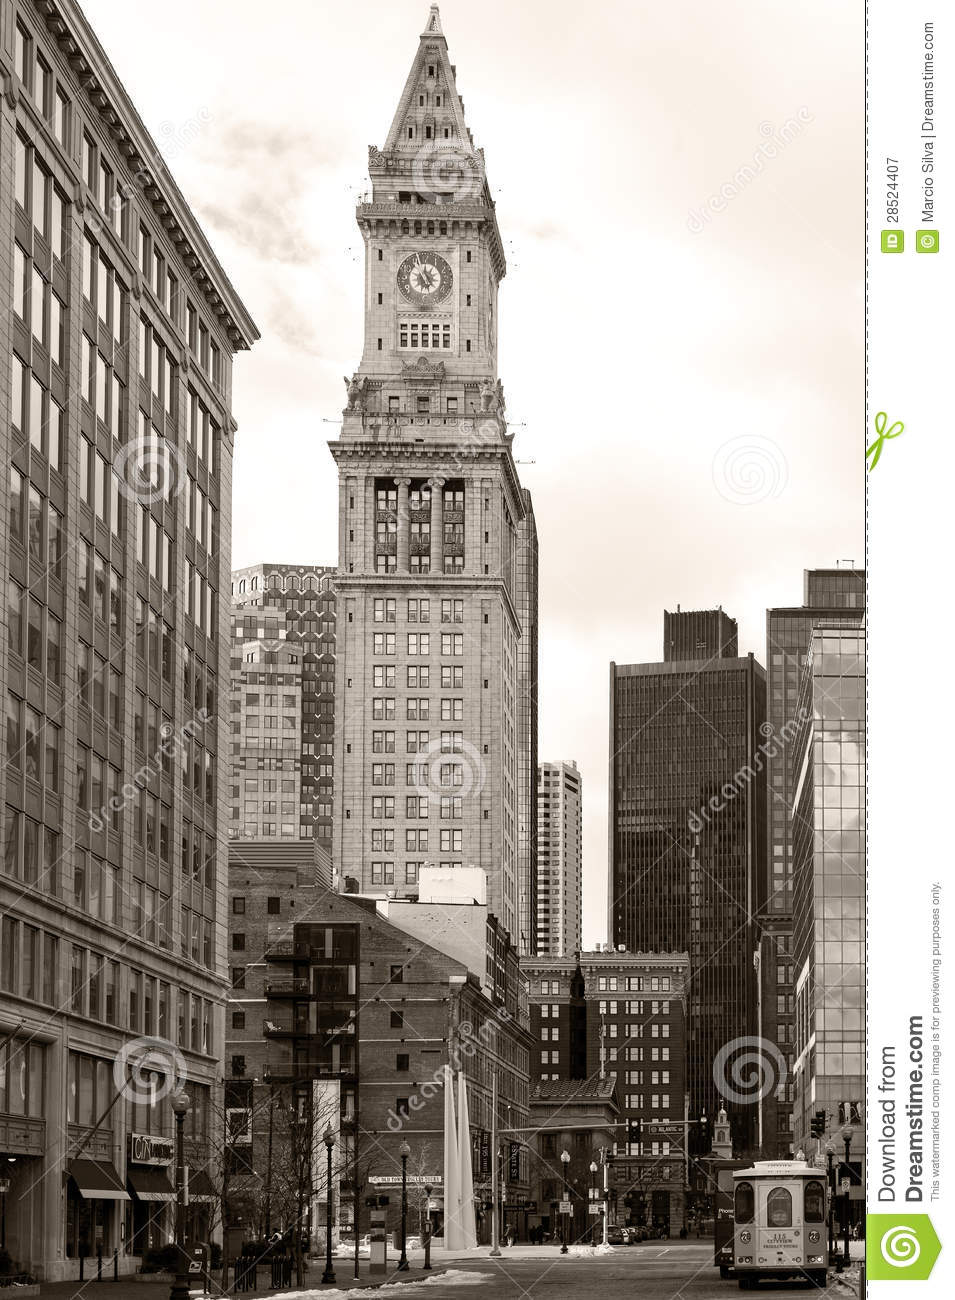 3 808 Old Custom House Photos Free Royalty Free Stock Photos From Dreamstime